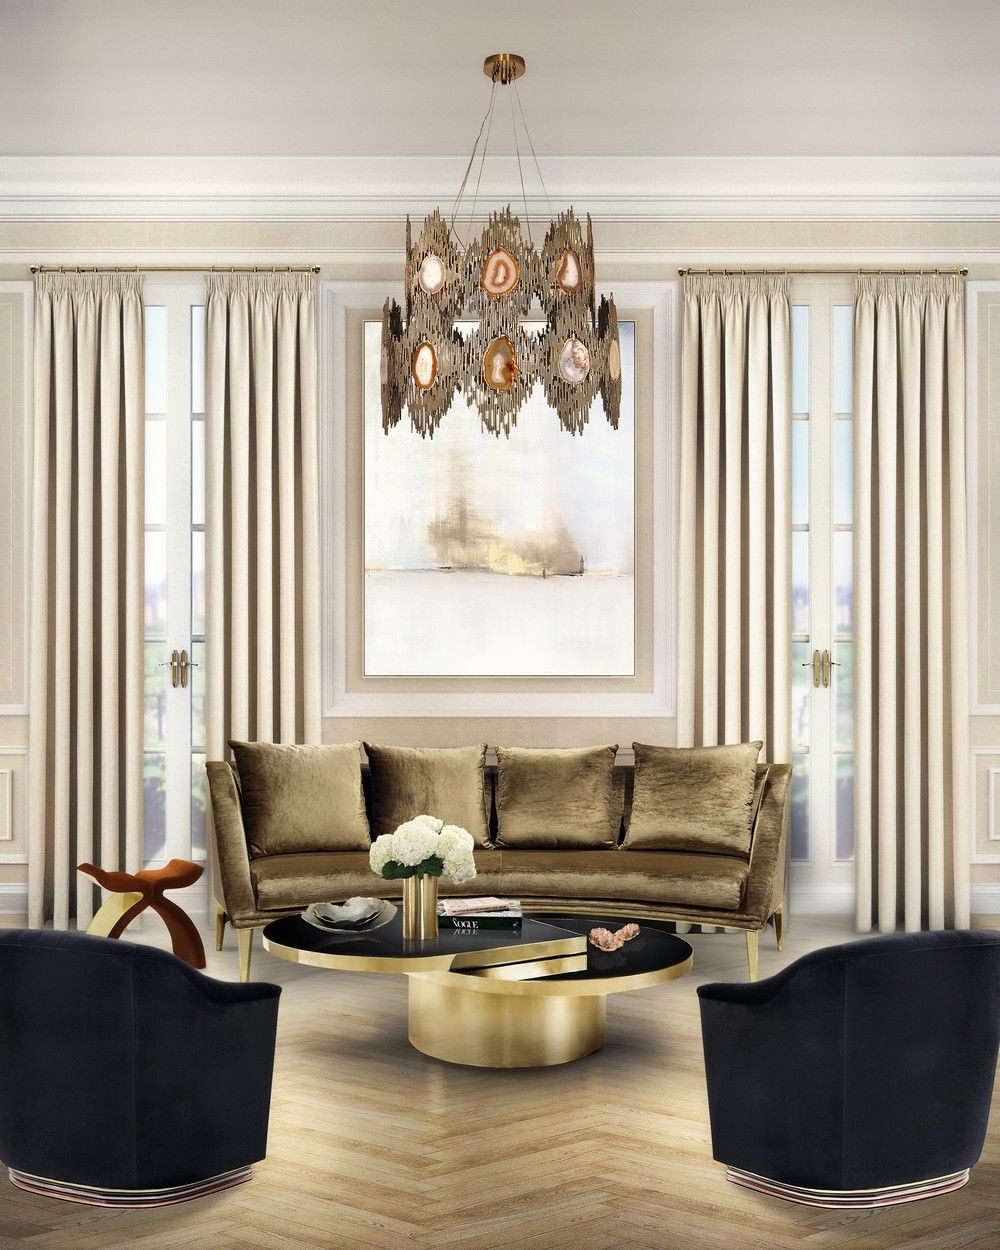 Interior design project by koket featuring the radiant vivre chandelier koket luxurydesigns exclusivedesigns